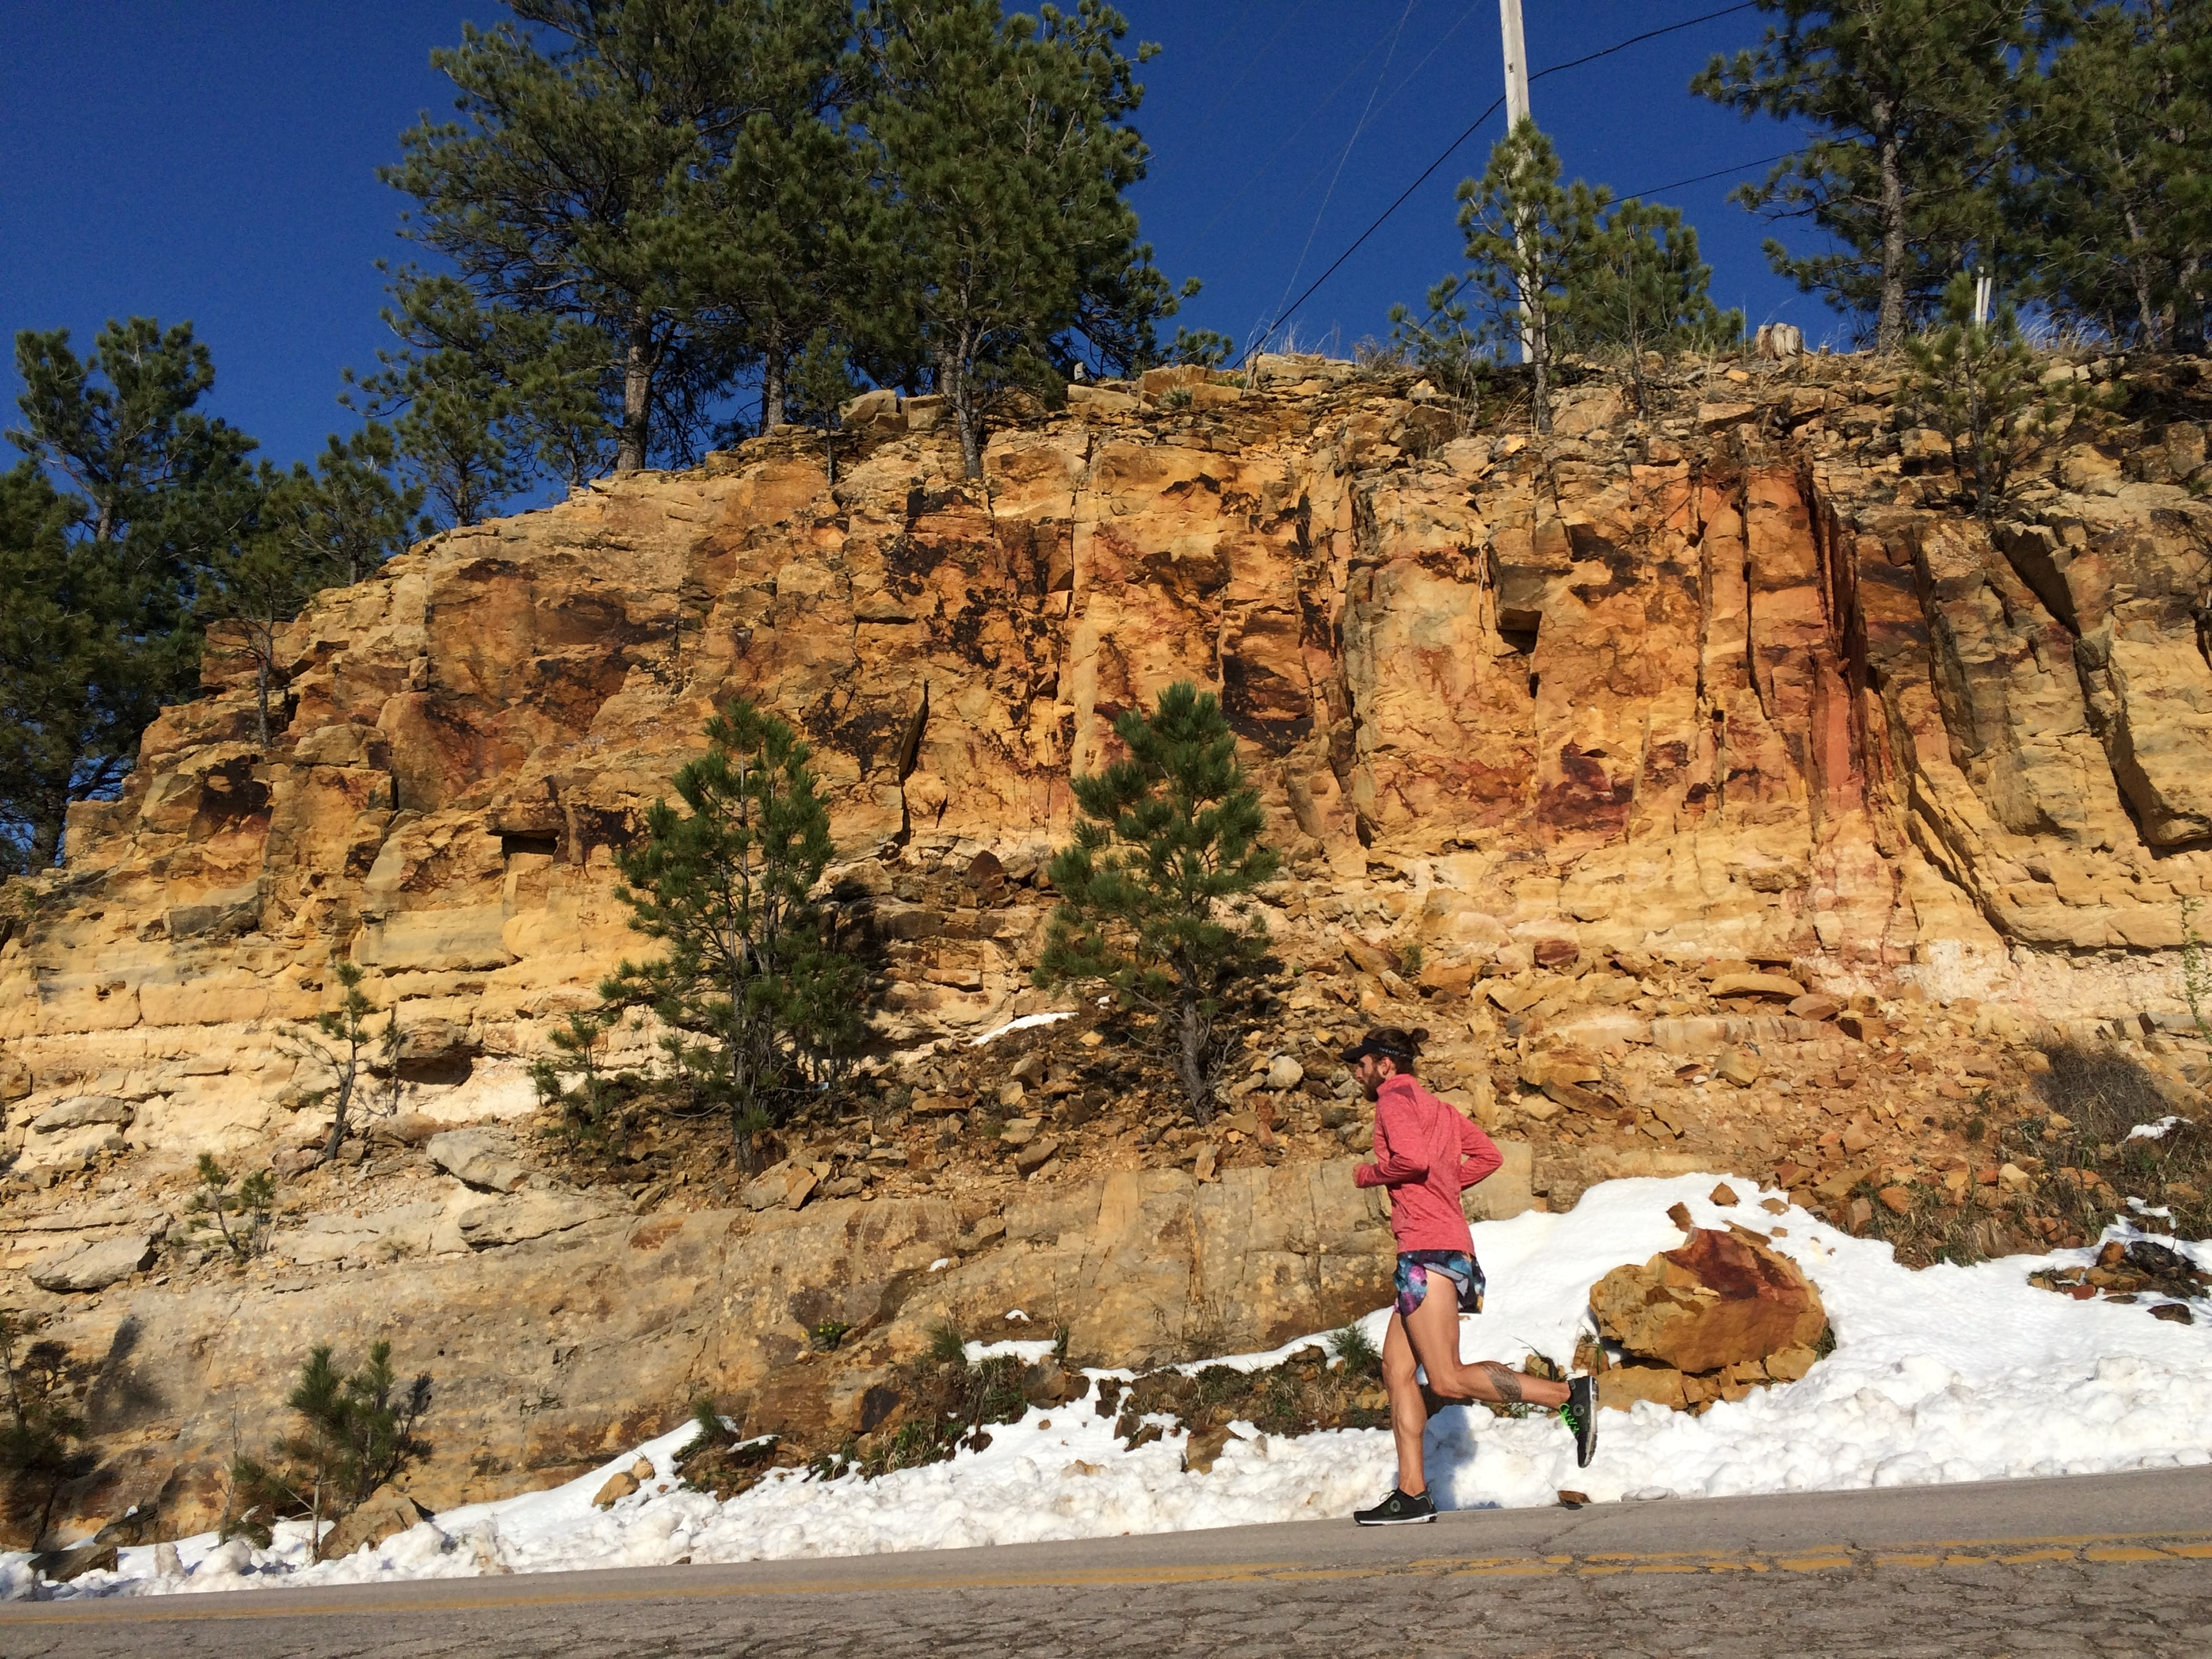 A girl running at the bottom of a rock hill on a warm winter day